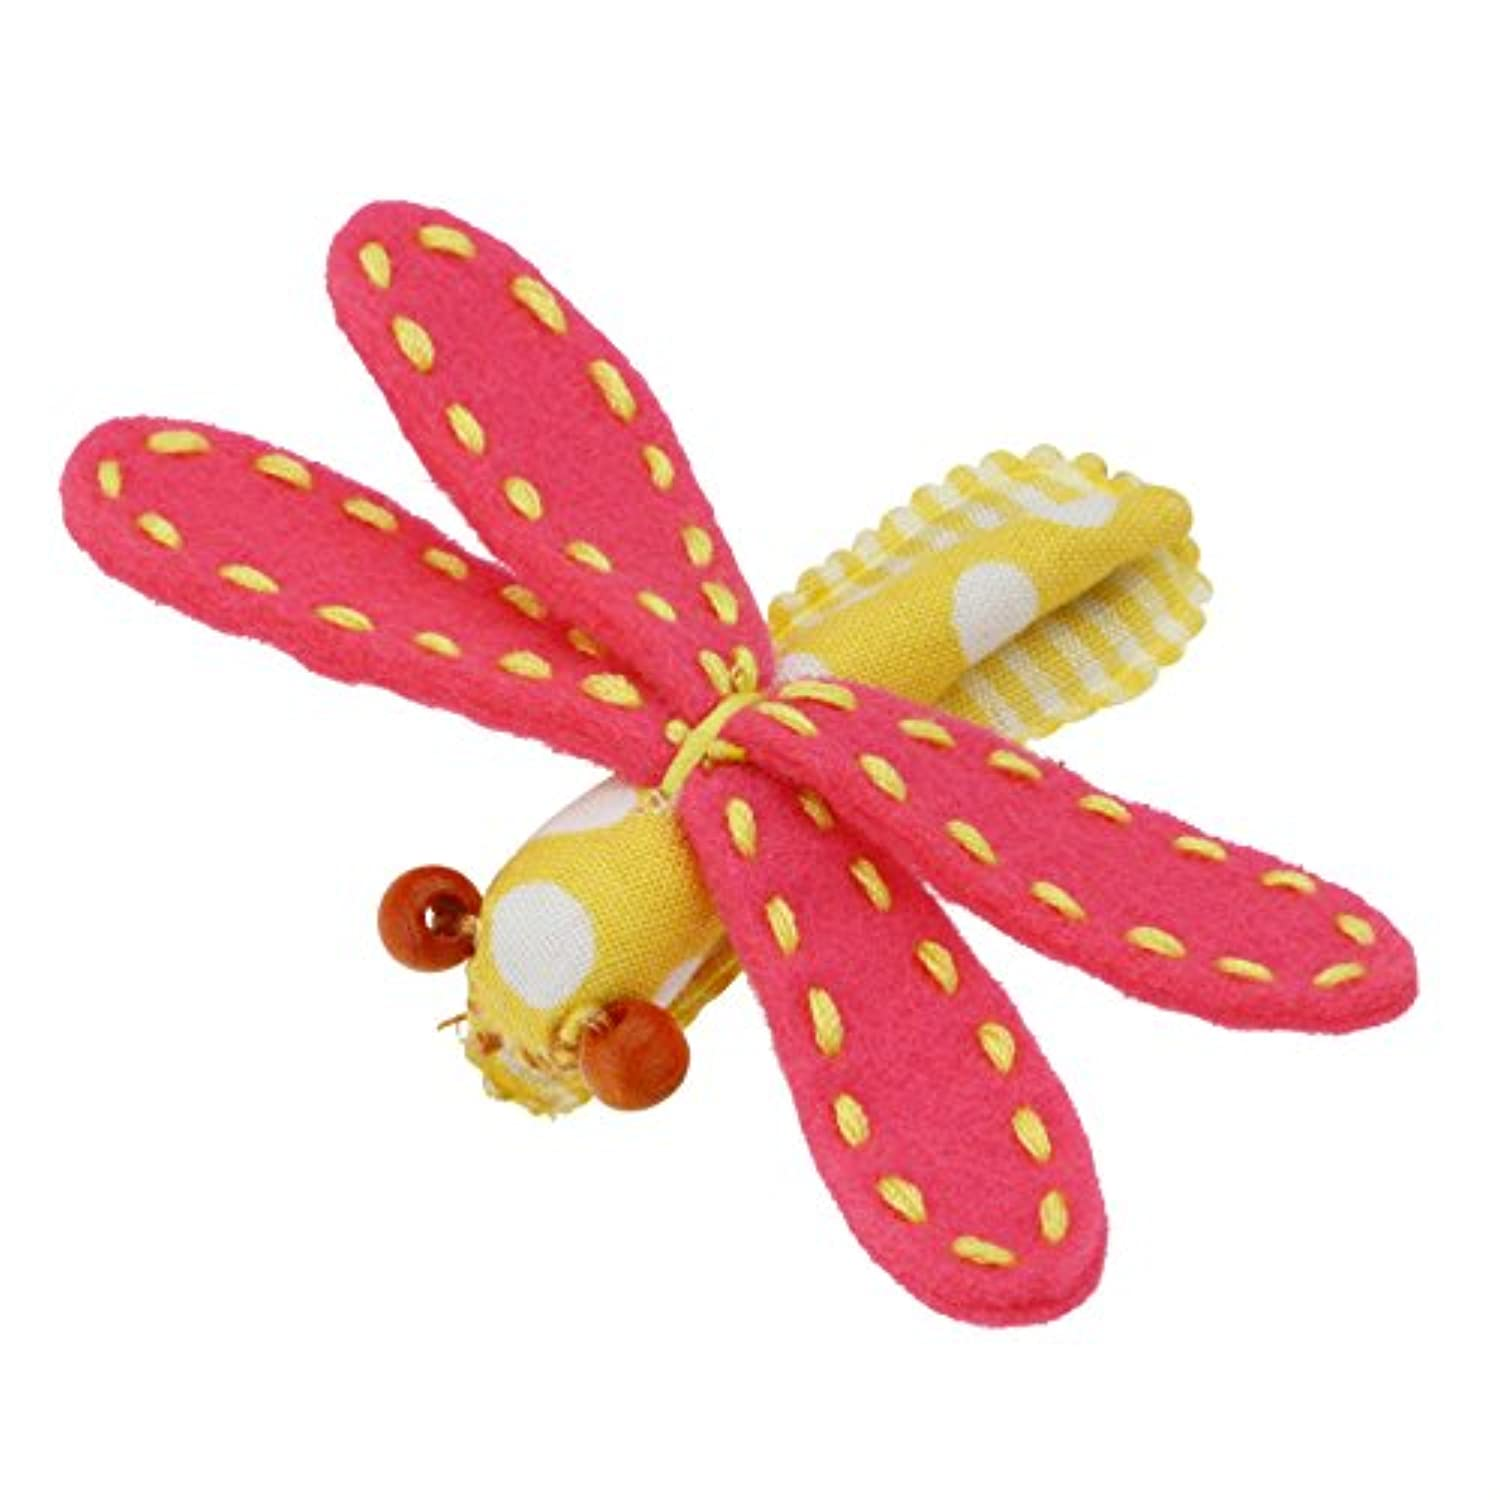 everbloom studio #31 Dragonfly clip pch